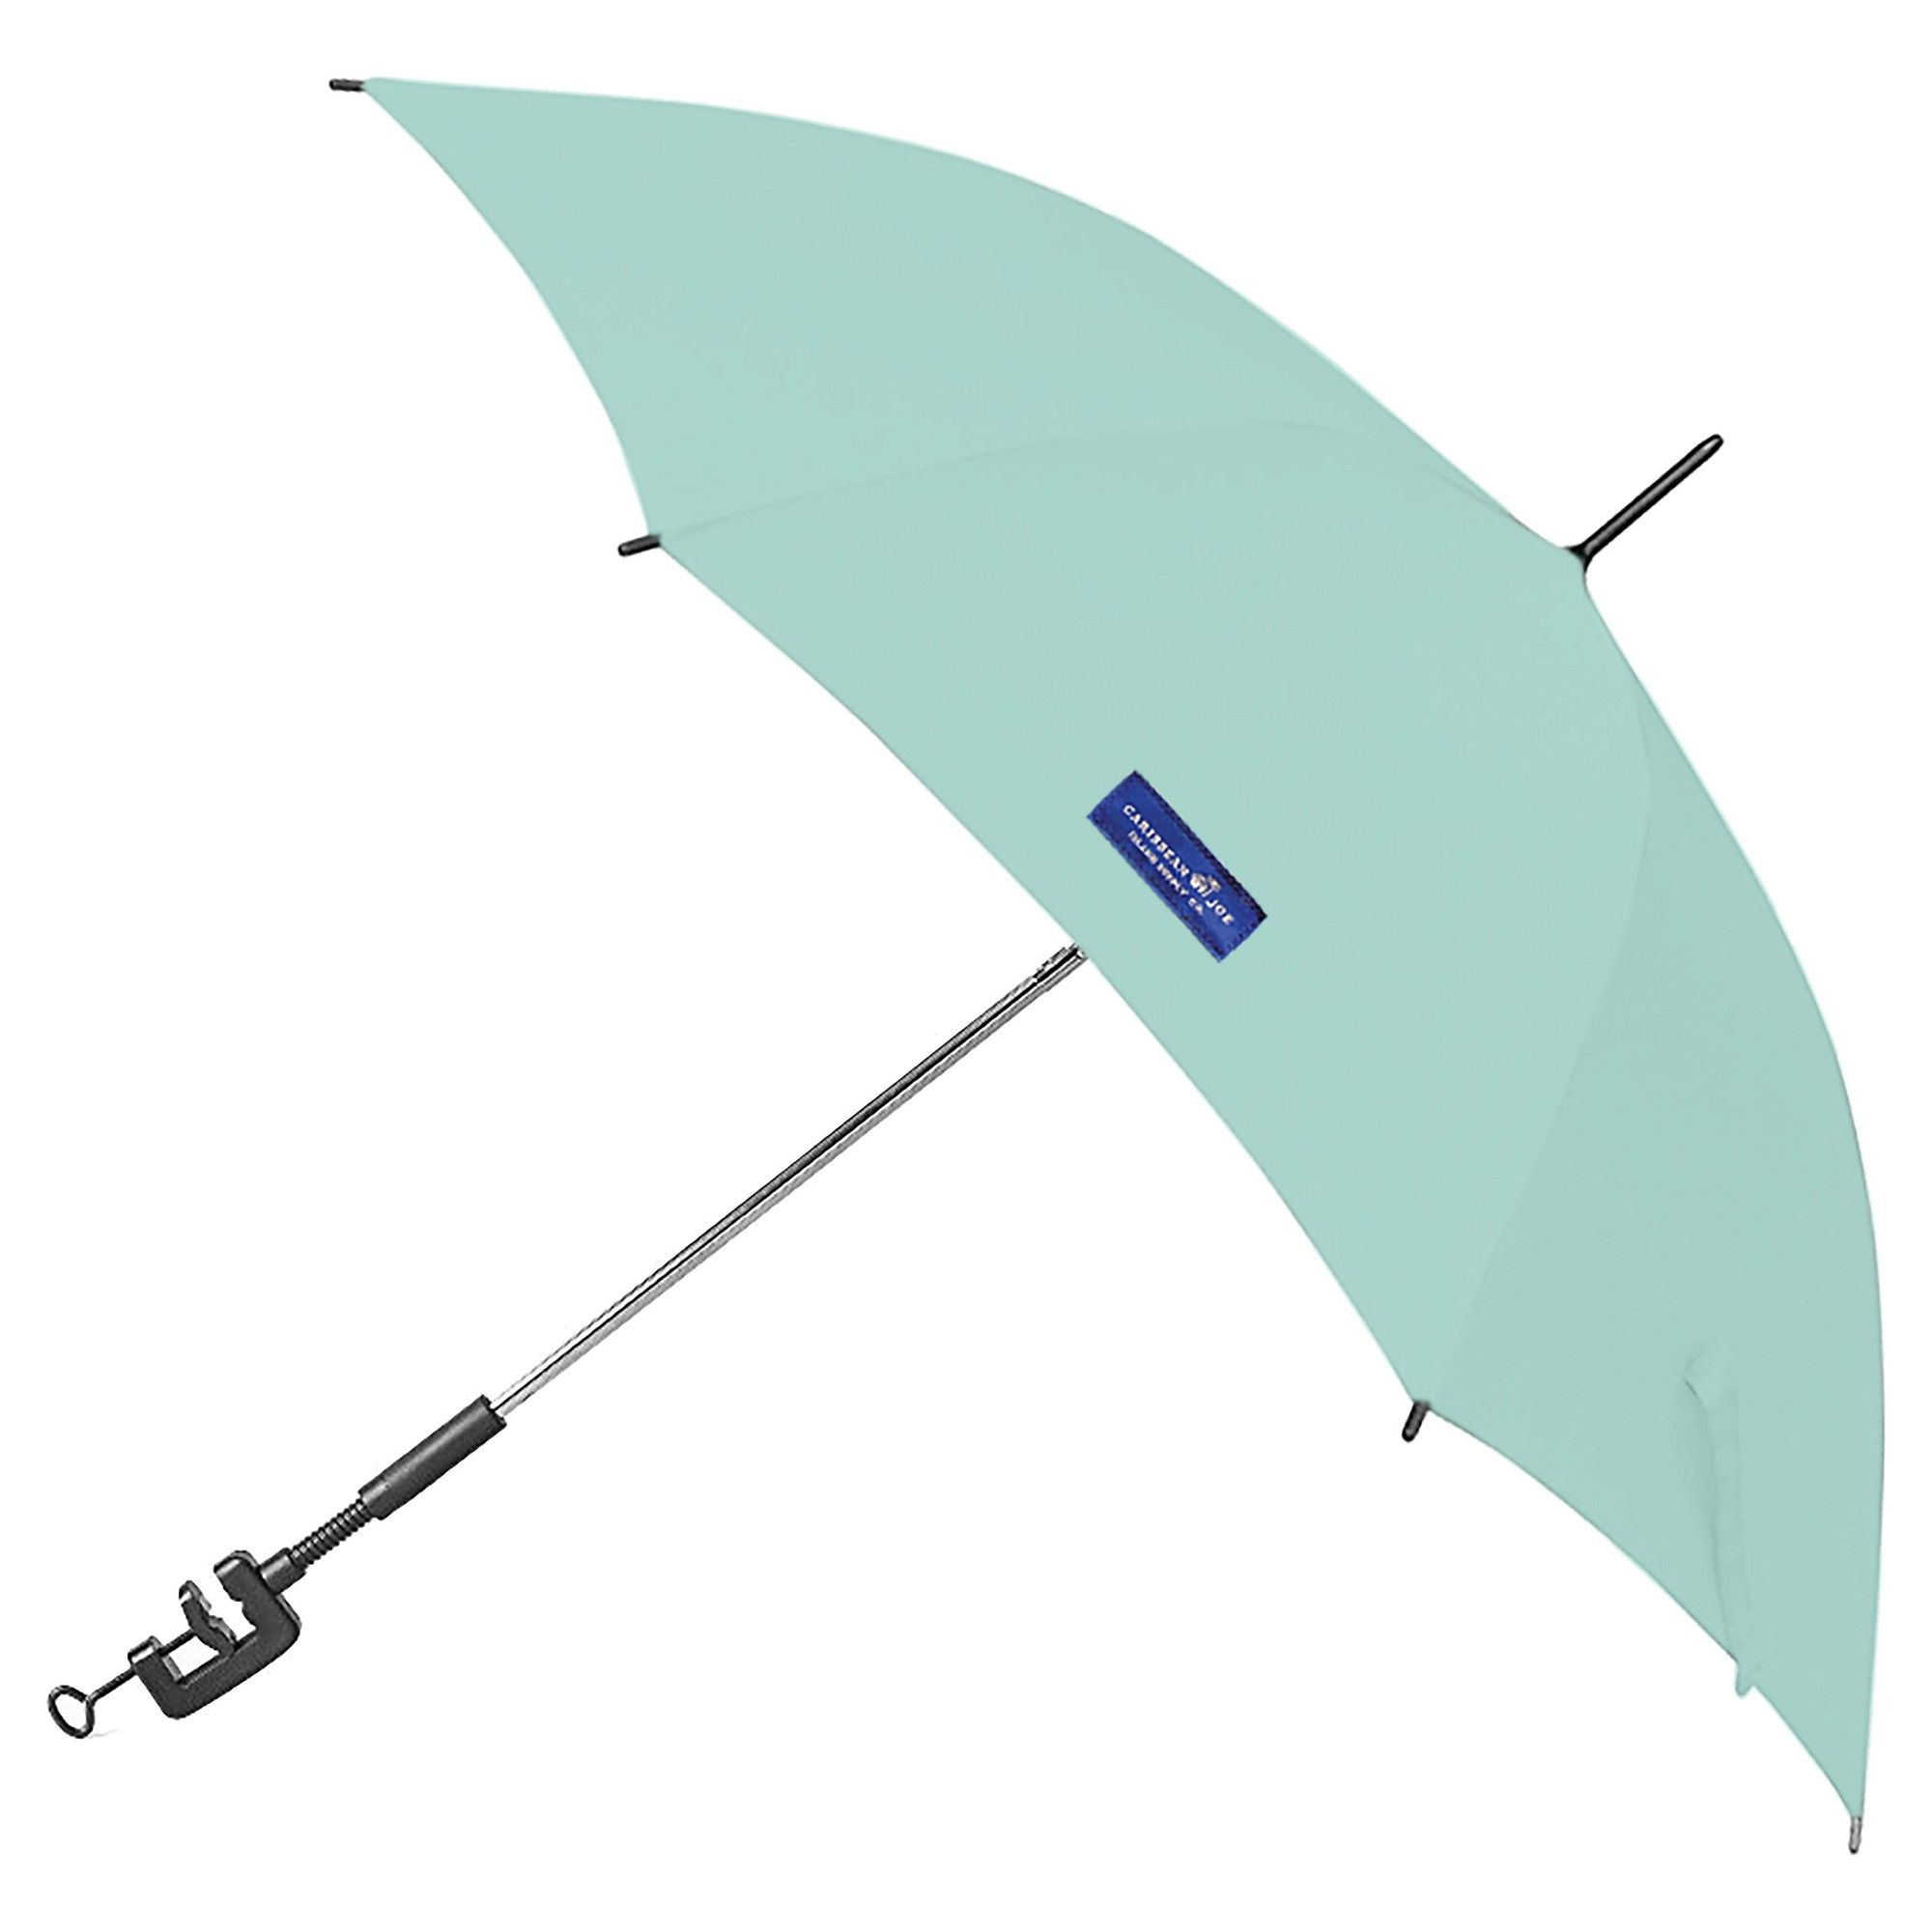 Clamp On Chair Umbrella Caribbean Joe 48 Clamp On Beach Chair Umbrella Mint Green